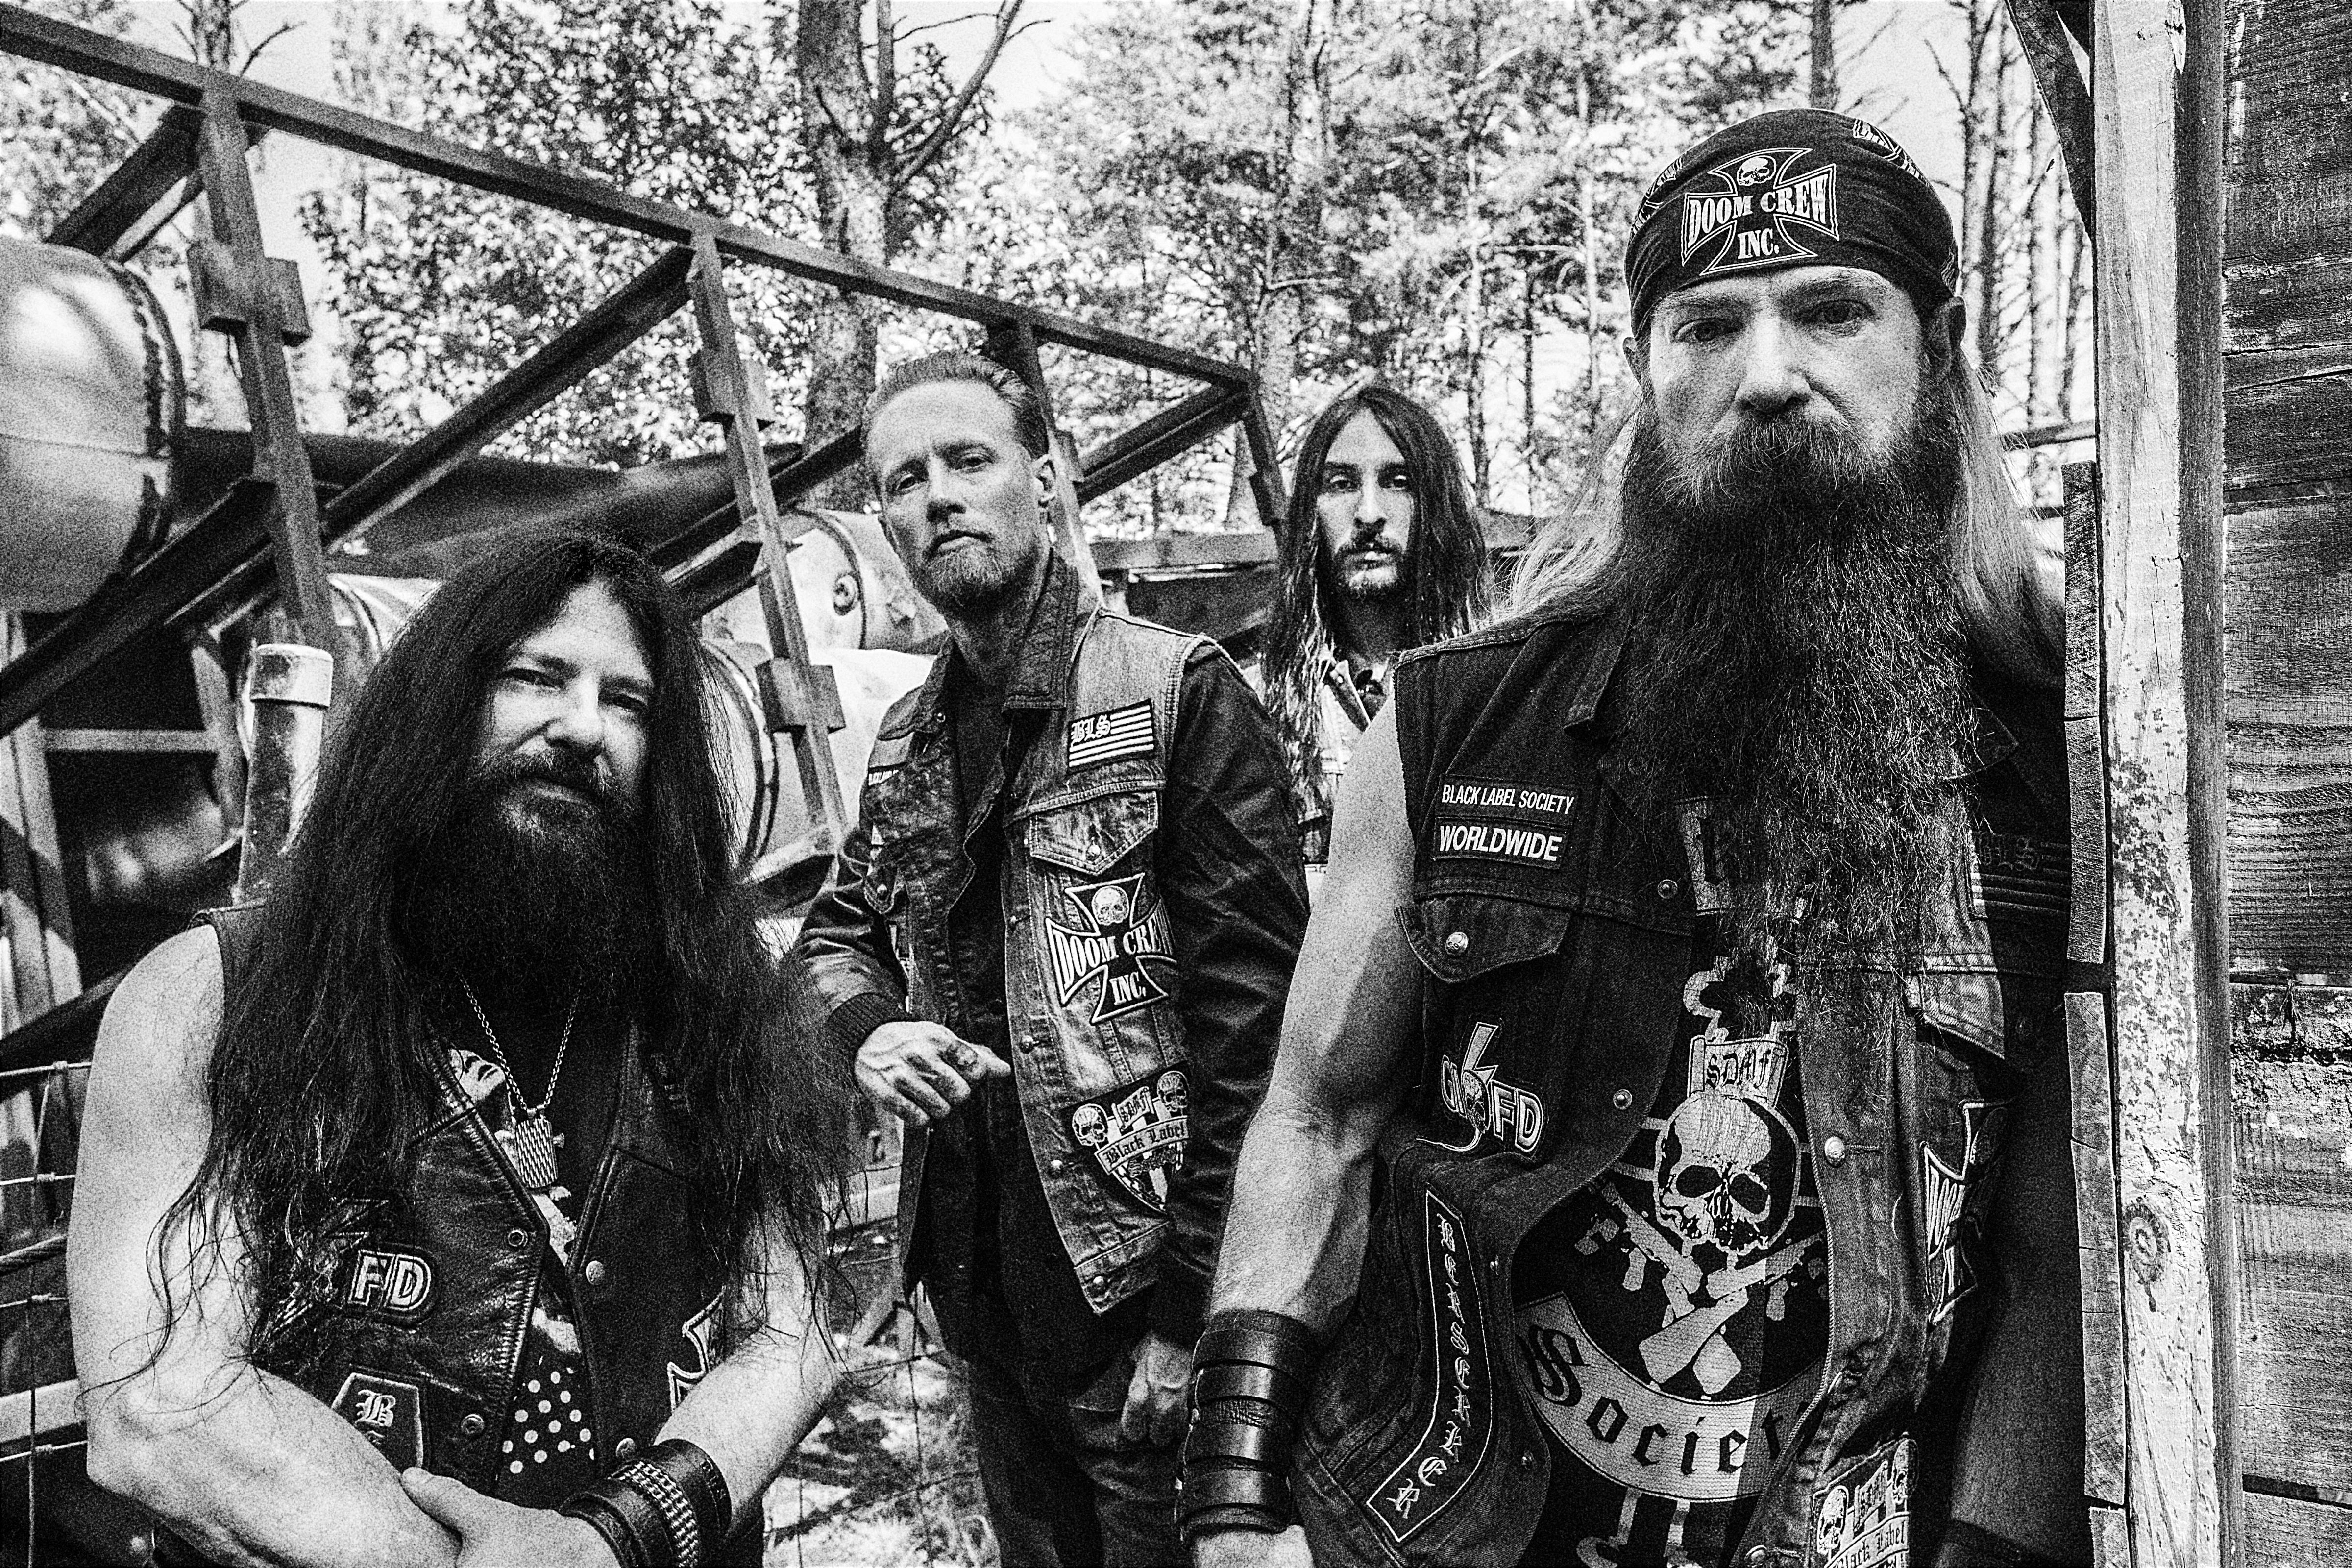 Balck Label Society : buy tickets to black label society in clarksville on may 18 2019 ~ Hamham.info Haus und Dekorationen